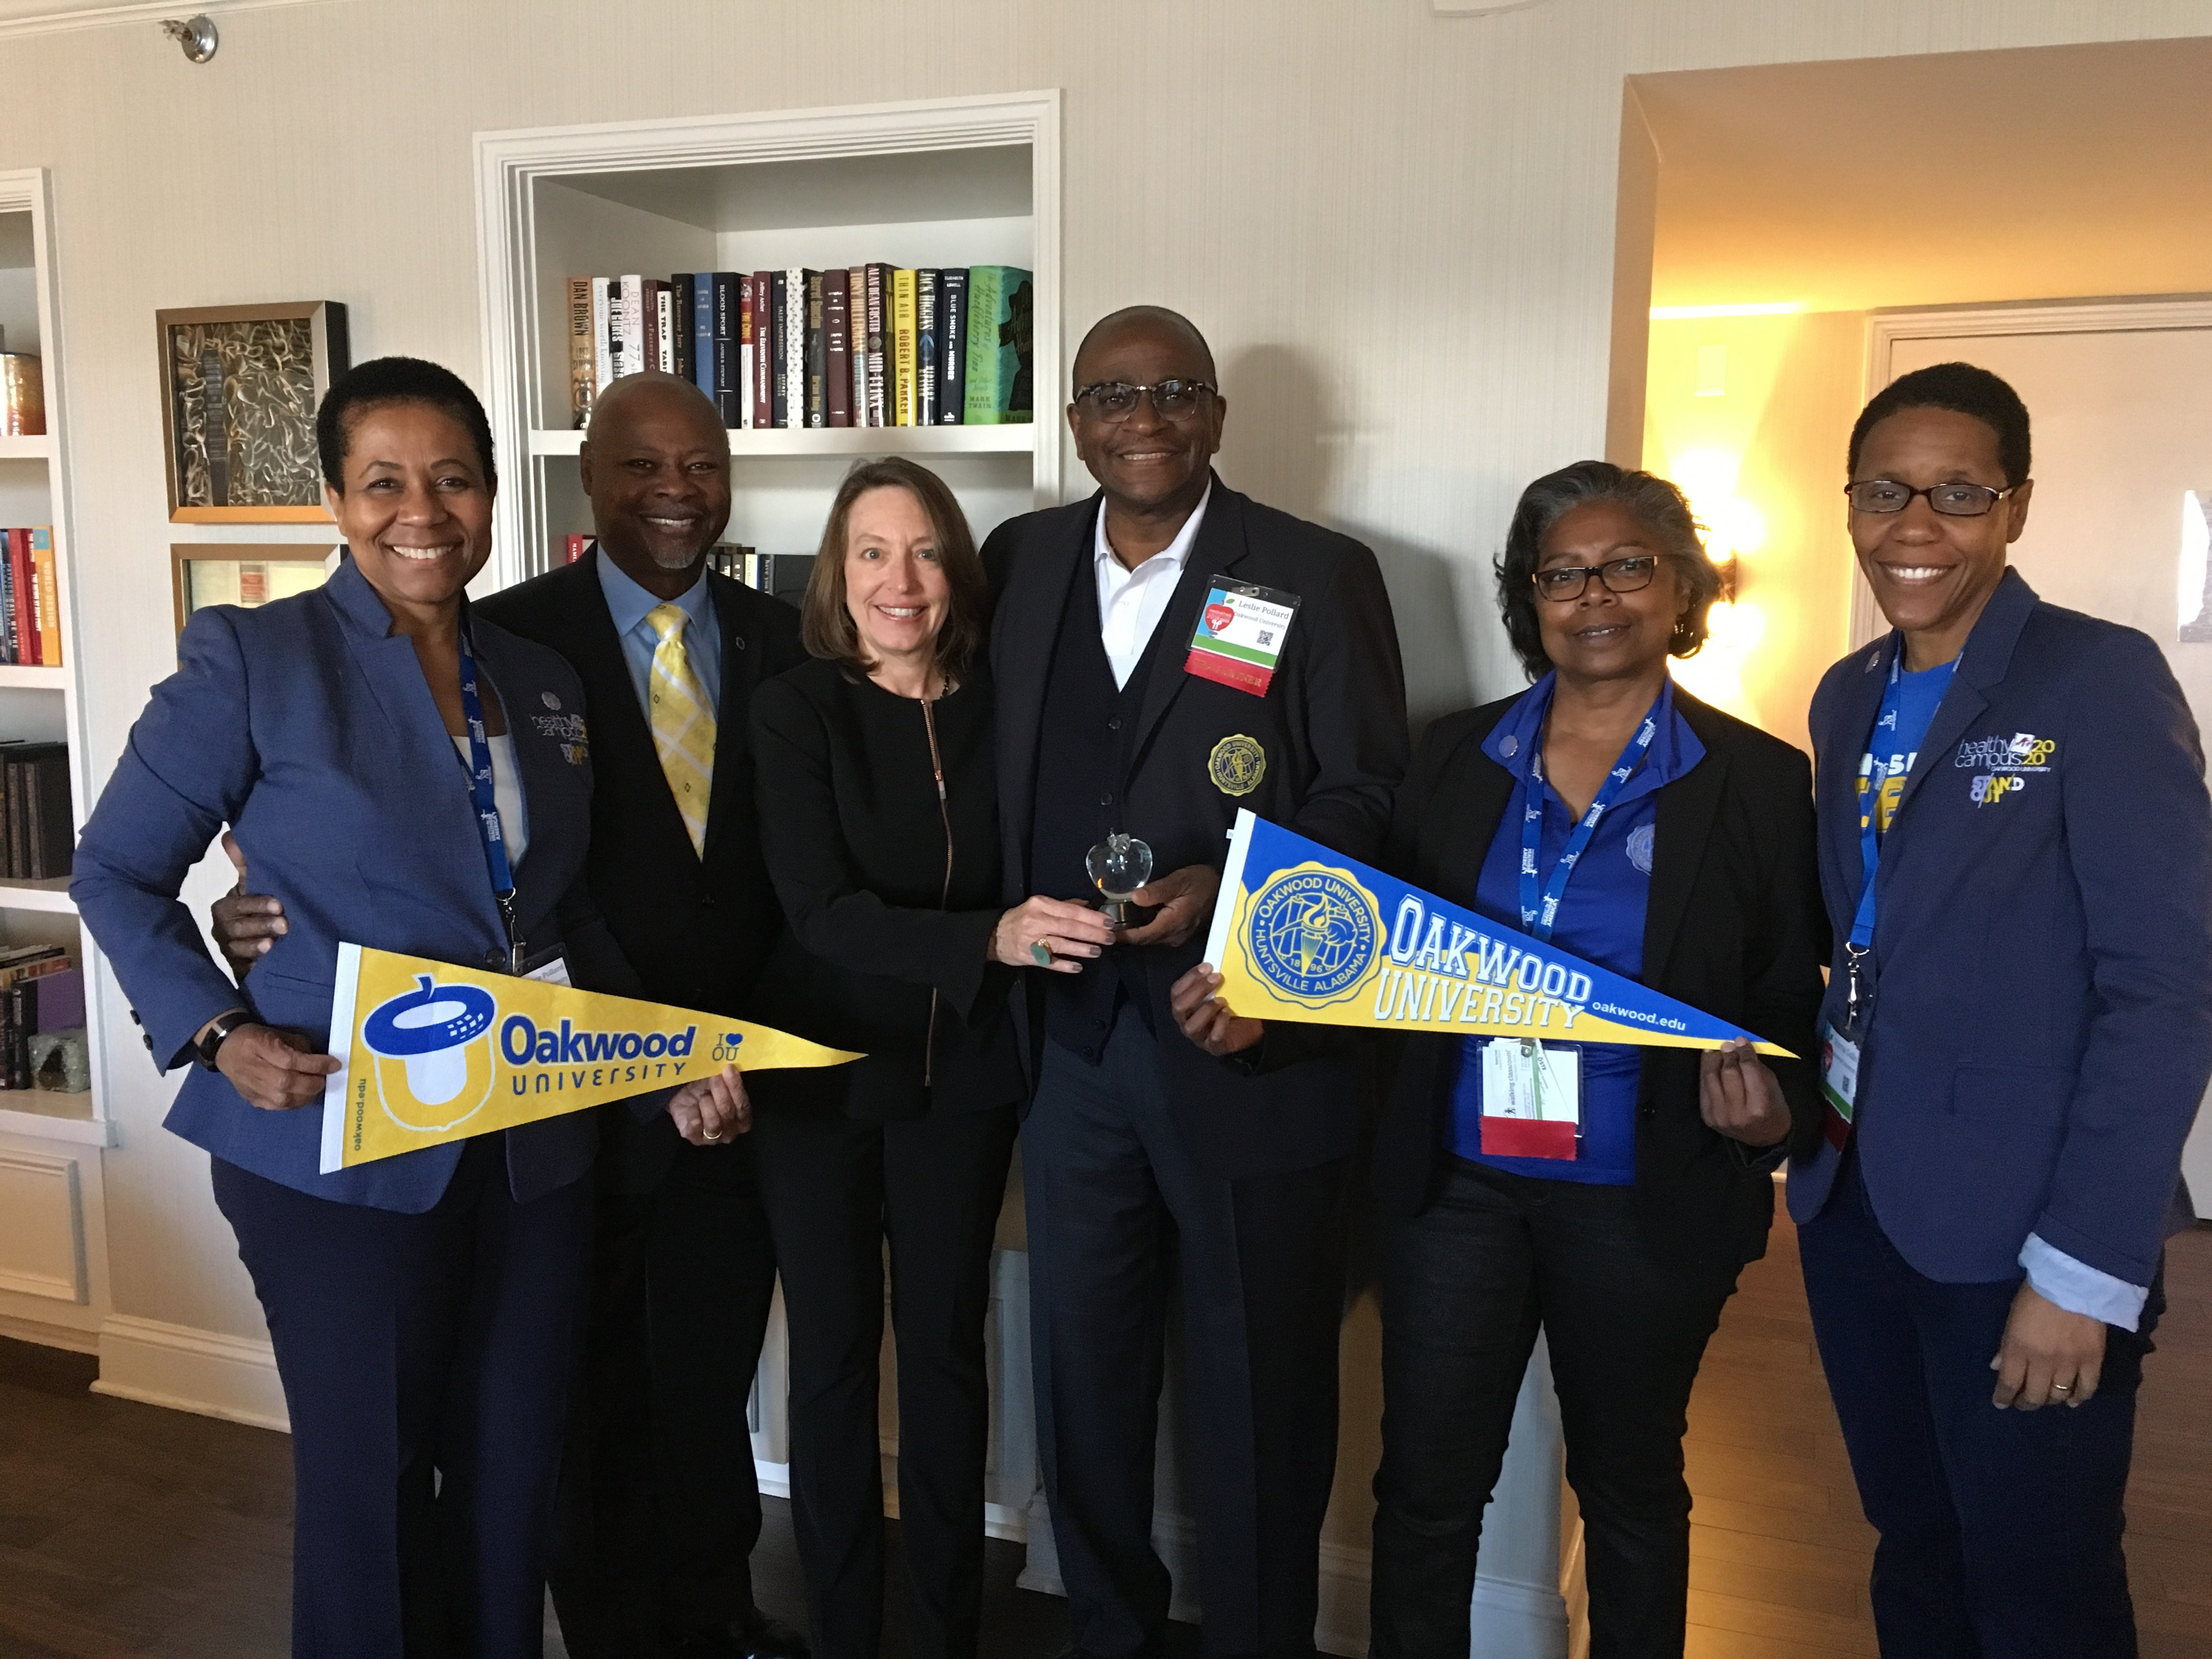 Oakwood University receives recognition for Healthy Campus 2020 initiative